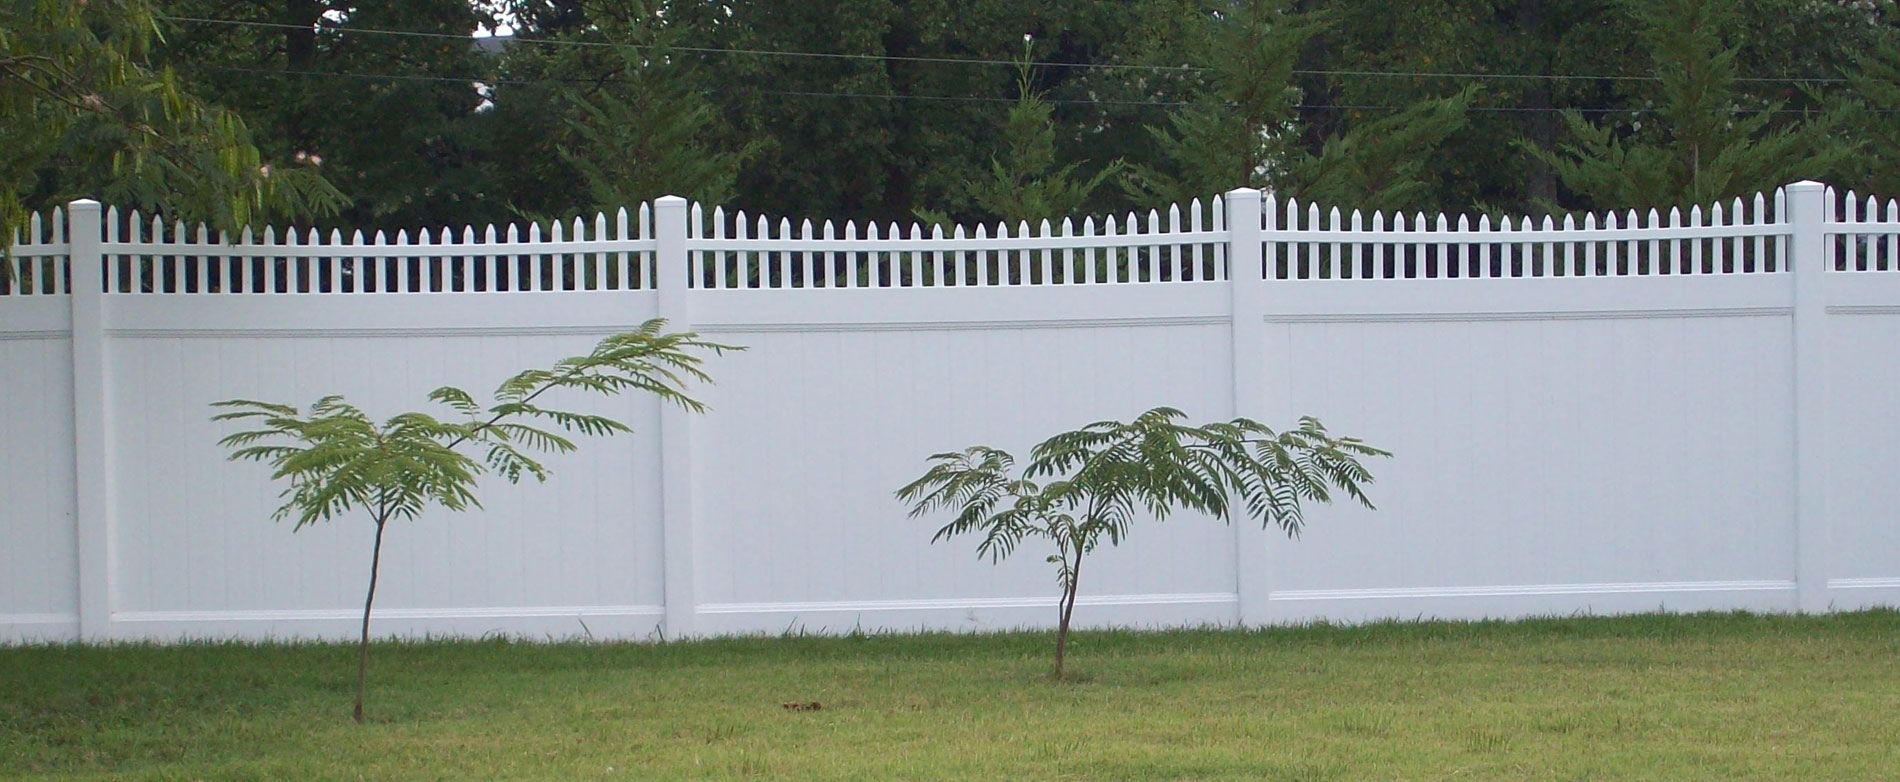 Fence Design Fencing Richmond Fence Construction Installation inside size 1900 X 782